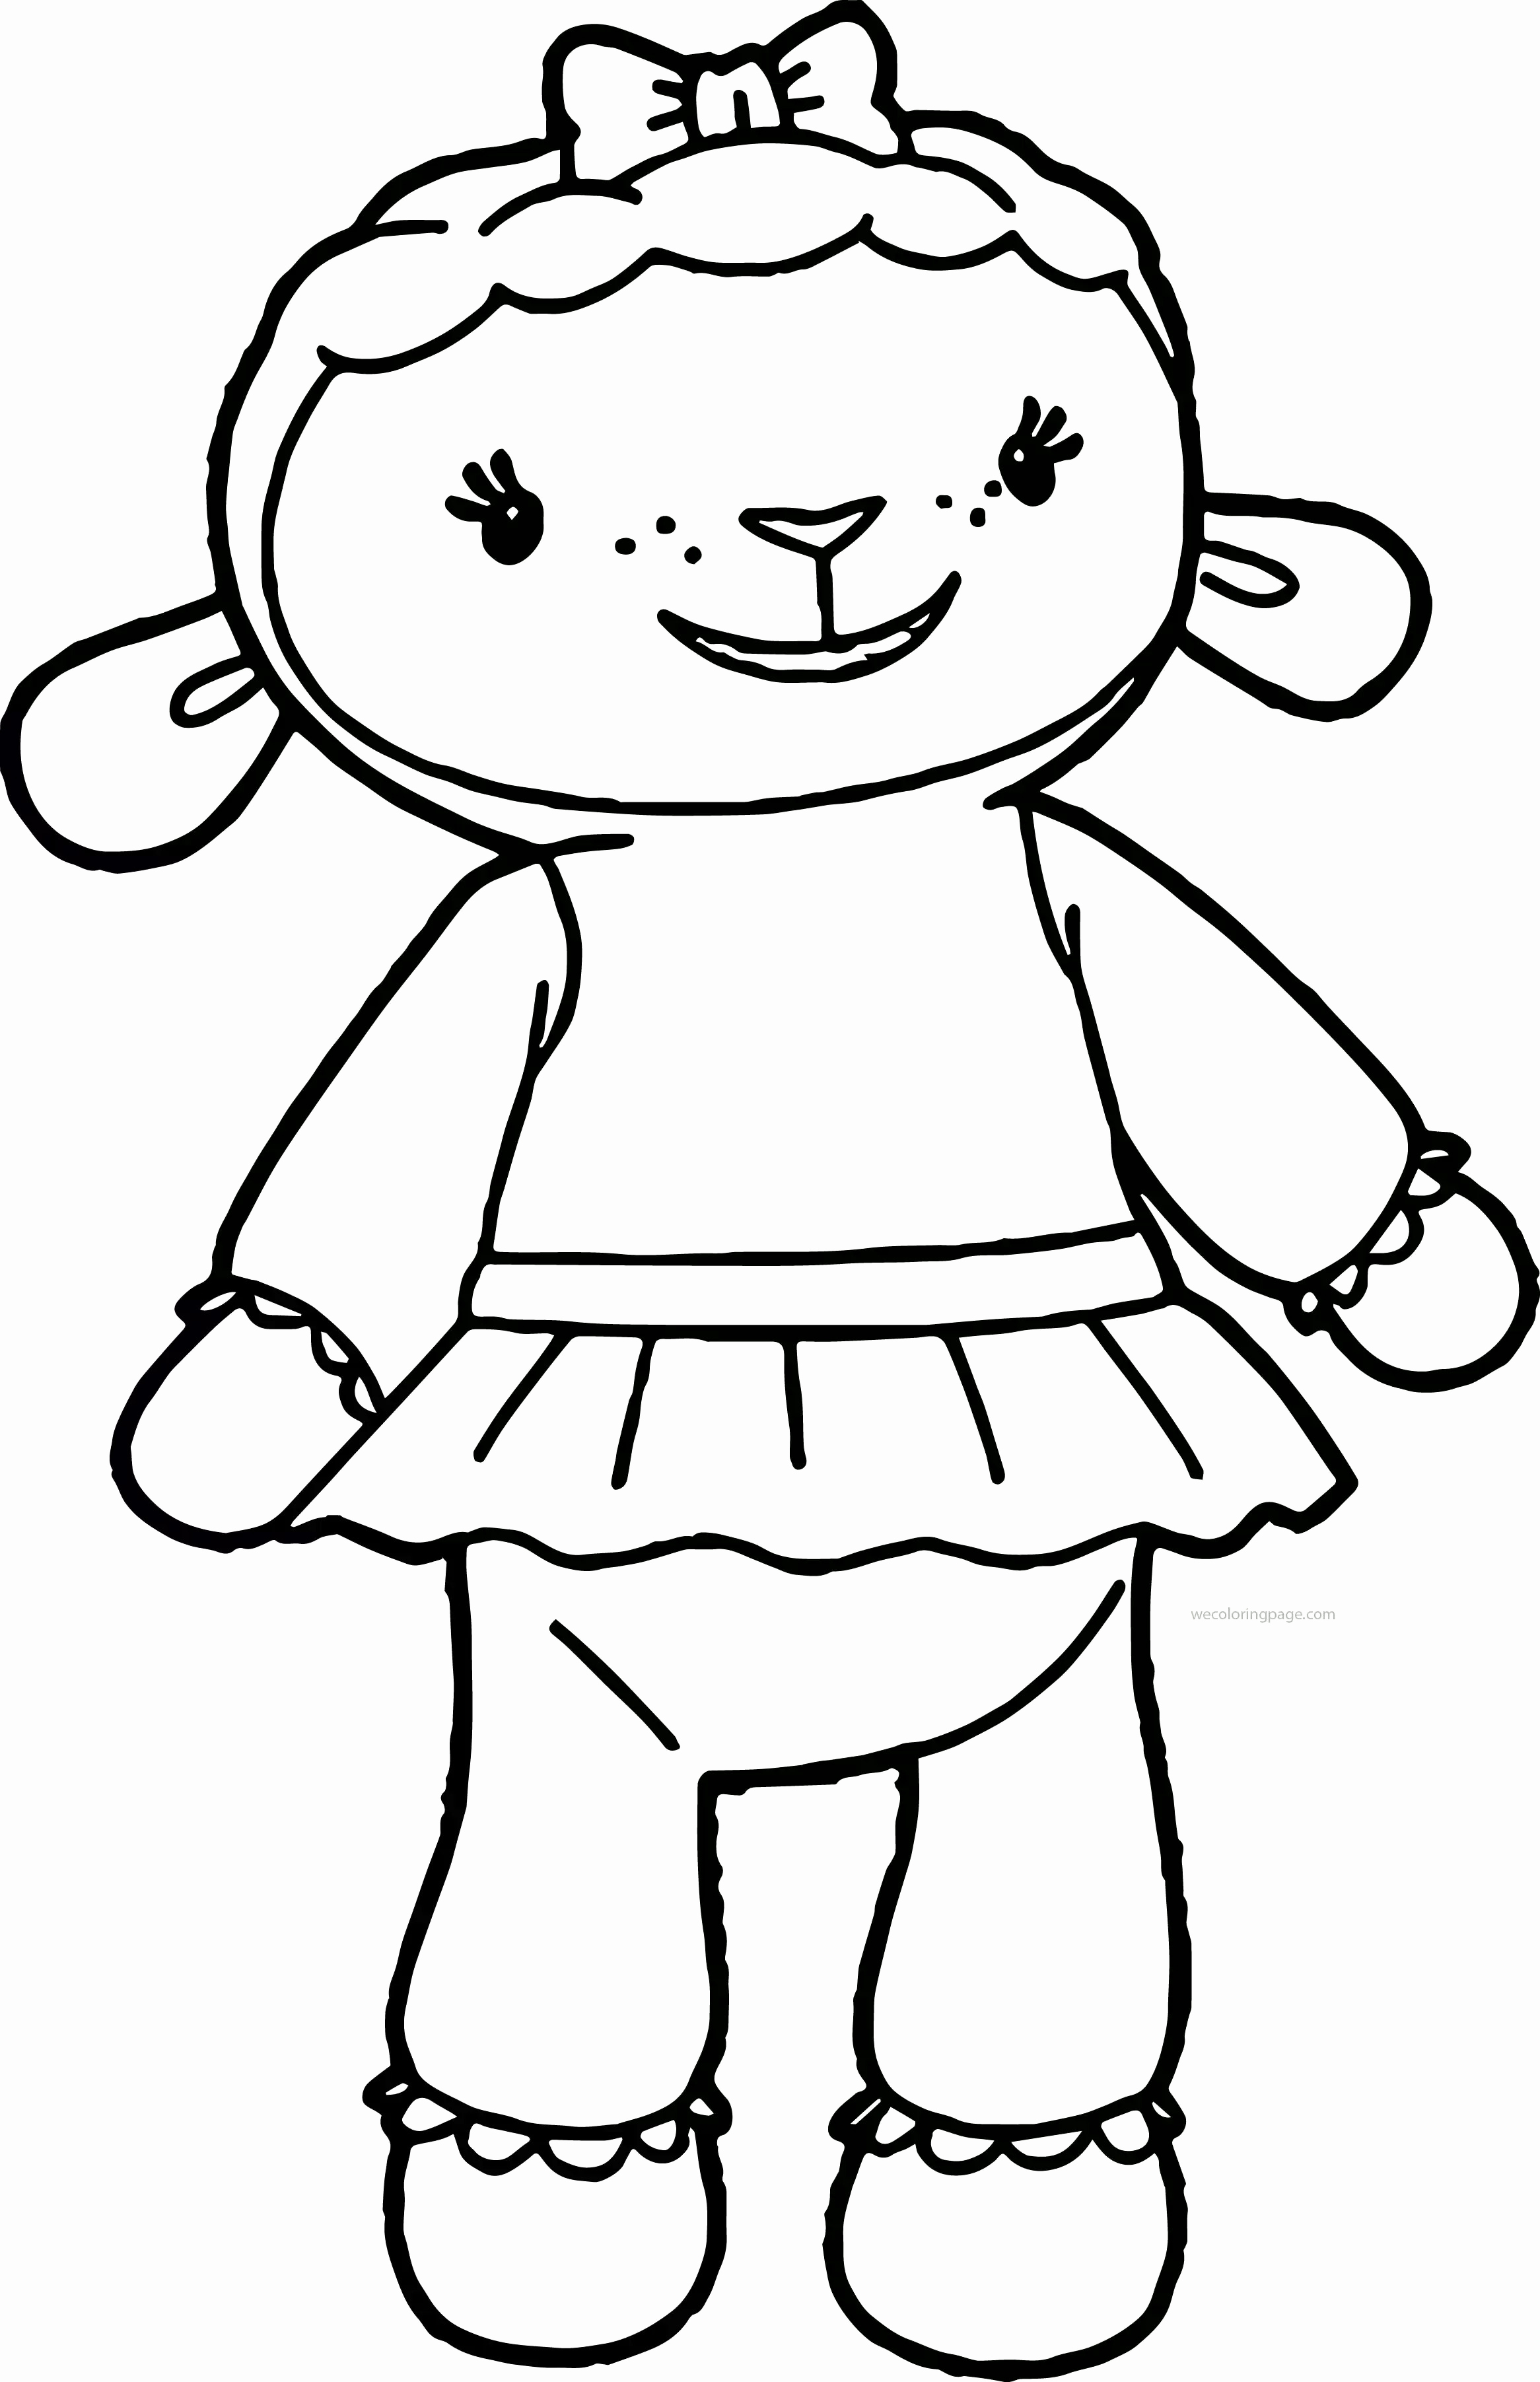 The Best Free Colorear Coloring Page Images Download From